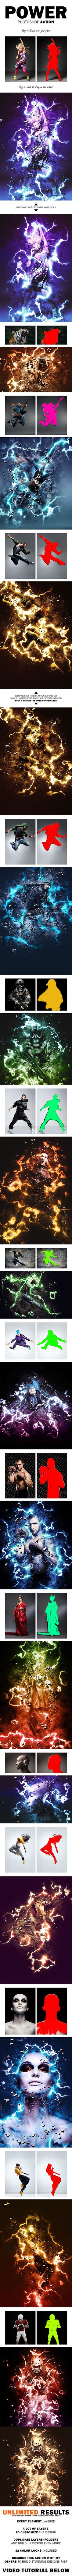 Amazing Photoshop Action . . . . . . . . #photoshop #action #specialeffect #montage #great #amazing #script #easy #graphicriver